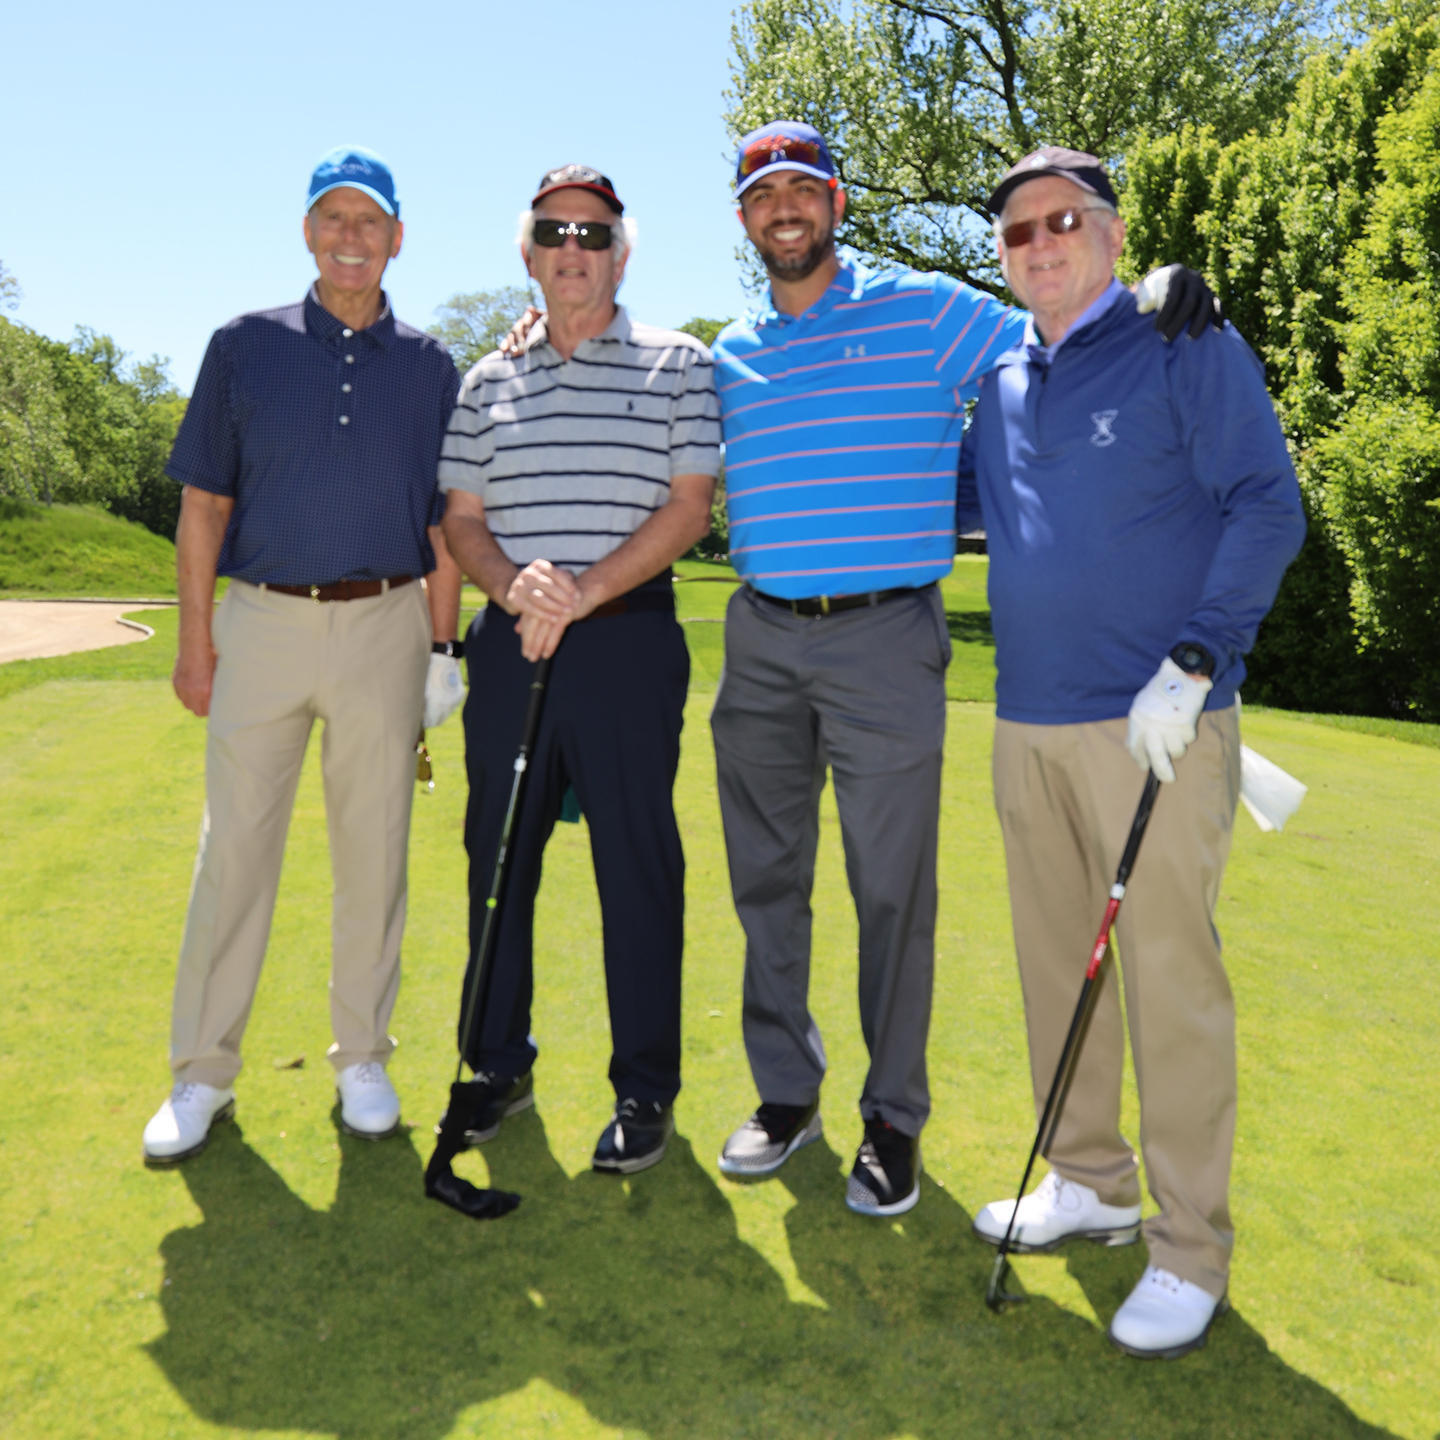 Four golfers, two of whom are holding their clubs stand together surrounded by trees and a bright blue sky.